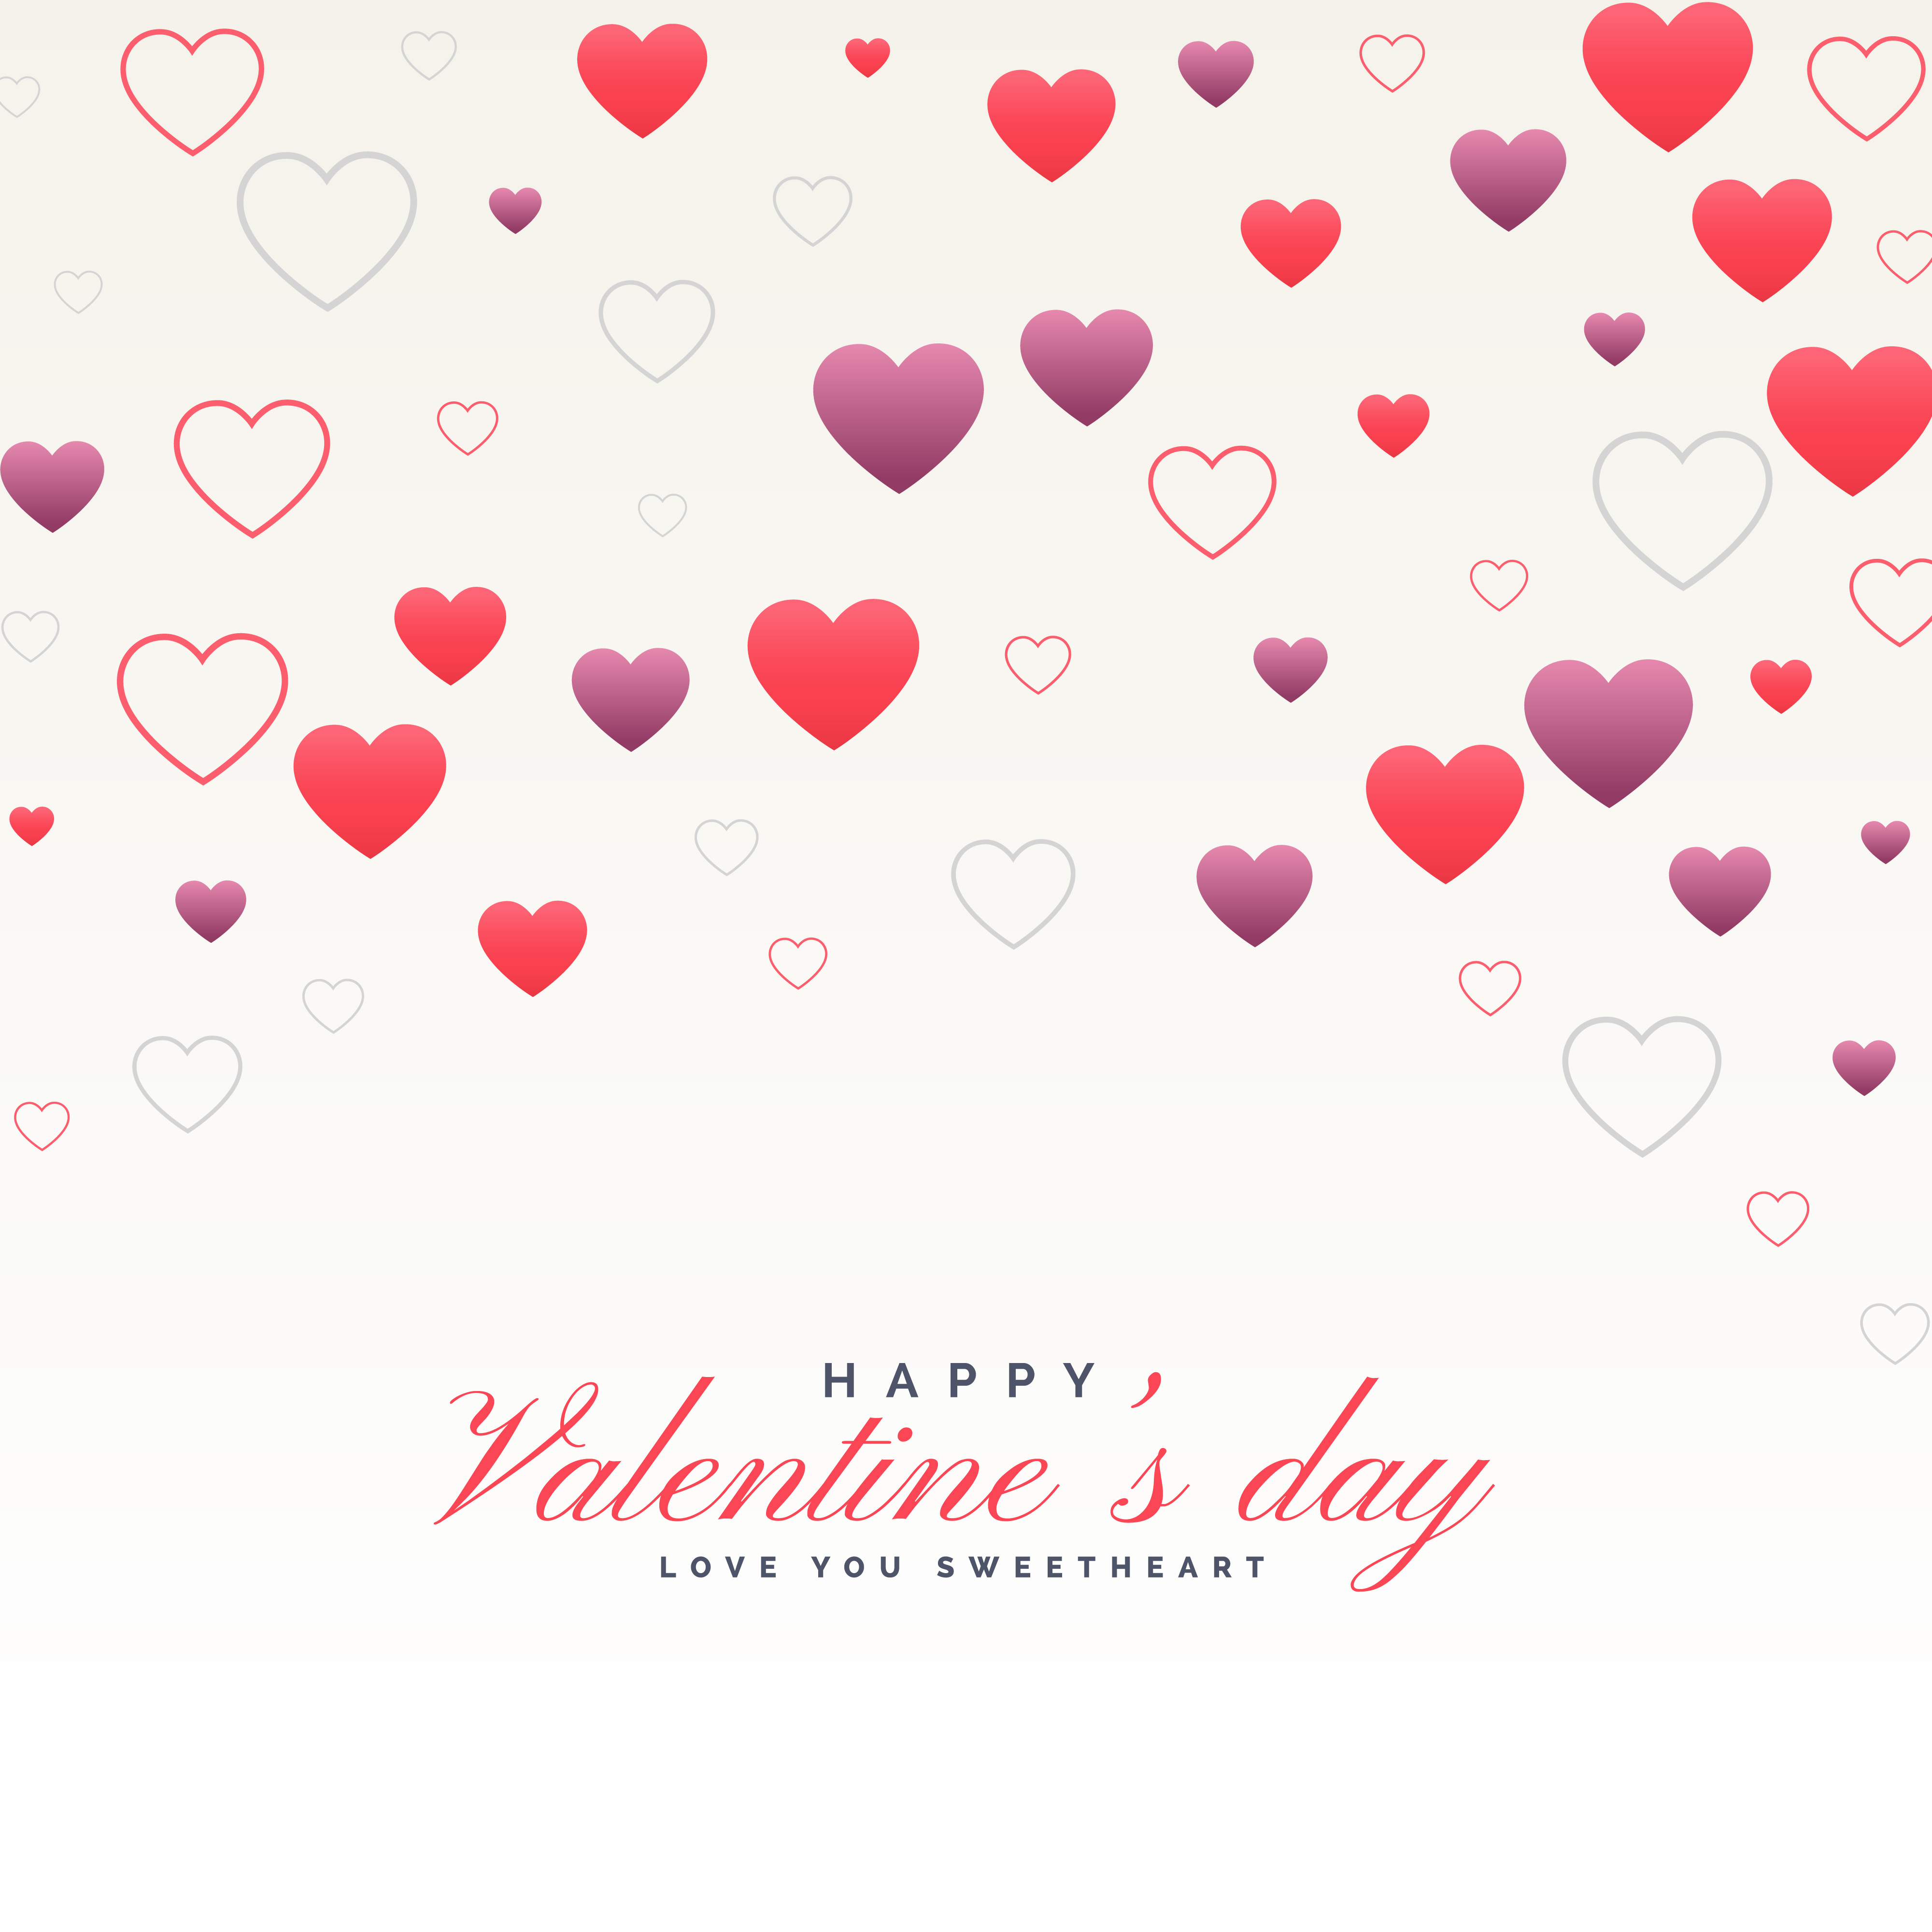 clean white valentine 39 s day background with hearts pattern. Black Bedroom Furniture Sets. Home Design Ideas